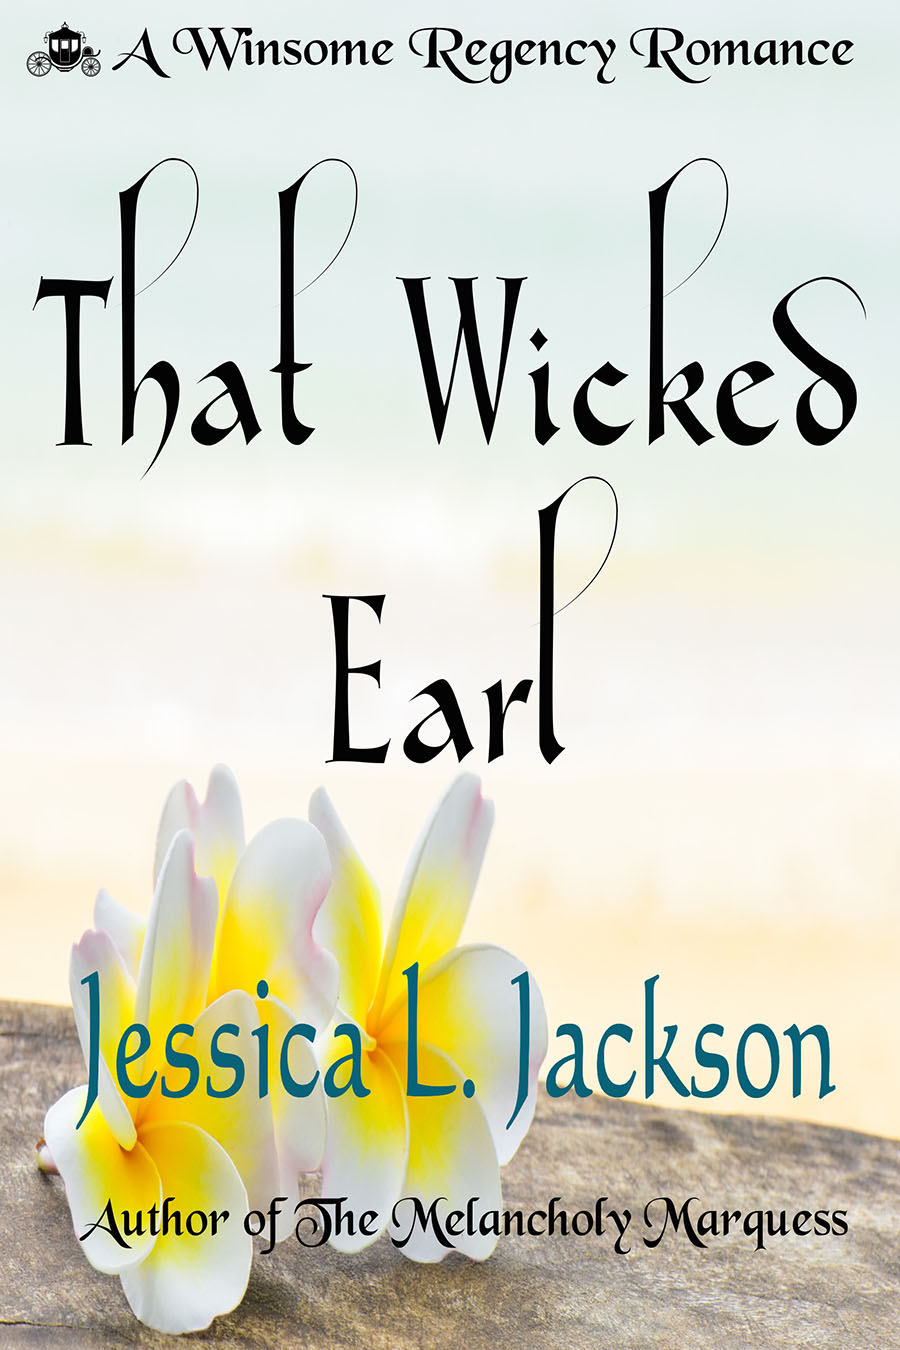 That Wicked Earl  by Jessica L. Jackson. Otaheitian princess Phillipah captures the heart of ladies' man James Pearlington, Earl of Strathmoor—but can she win the heart of England, too?